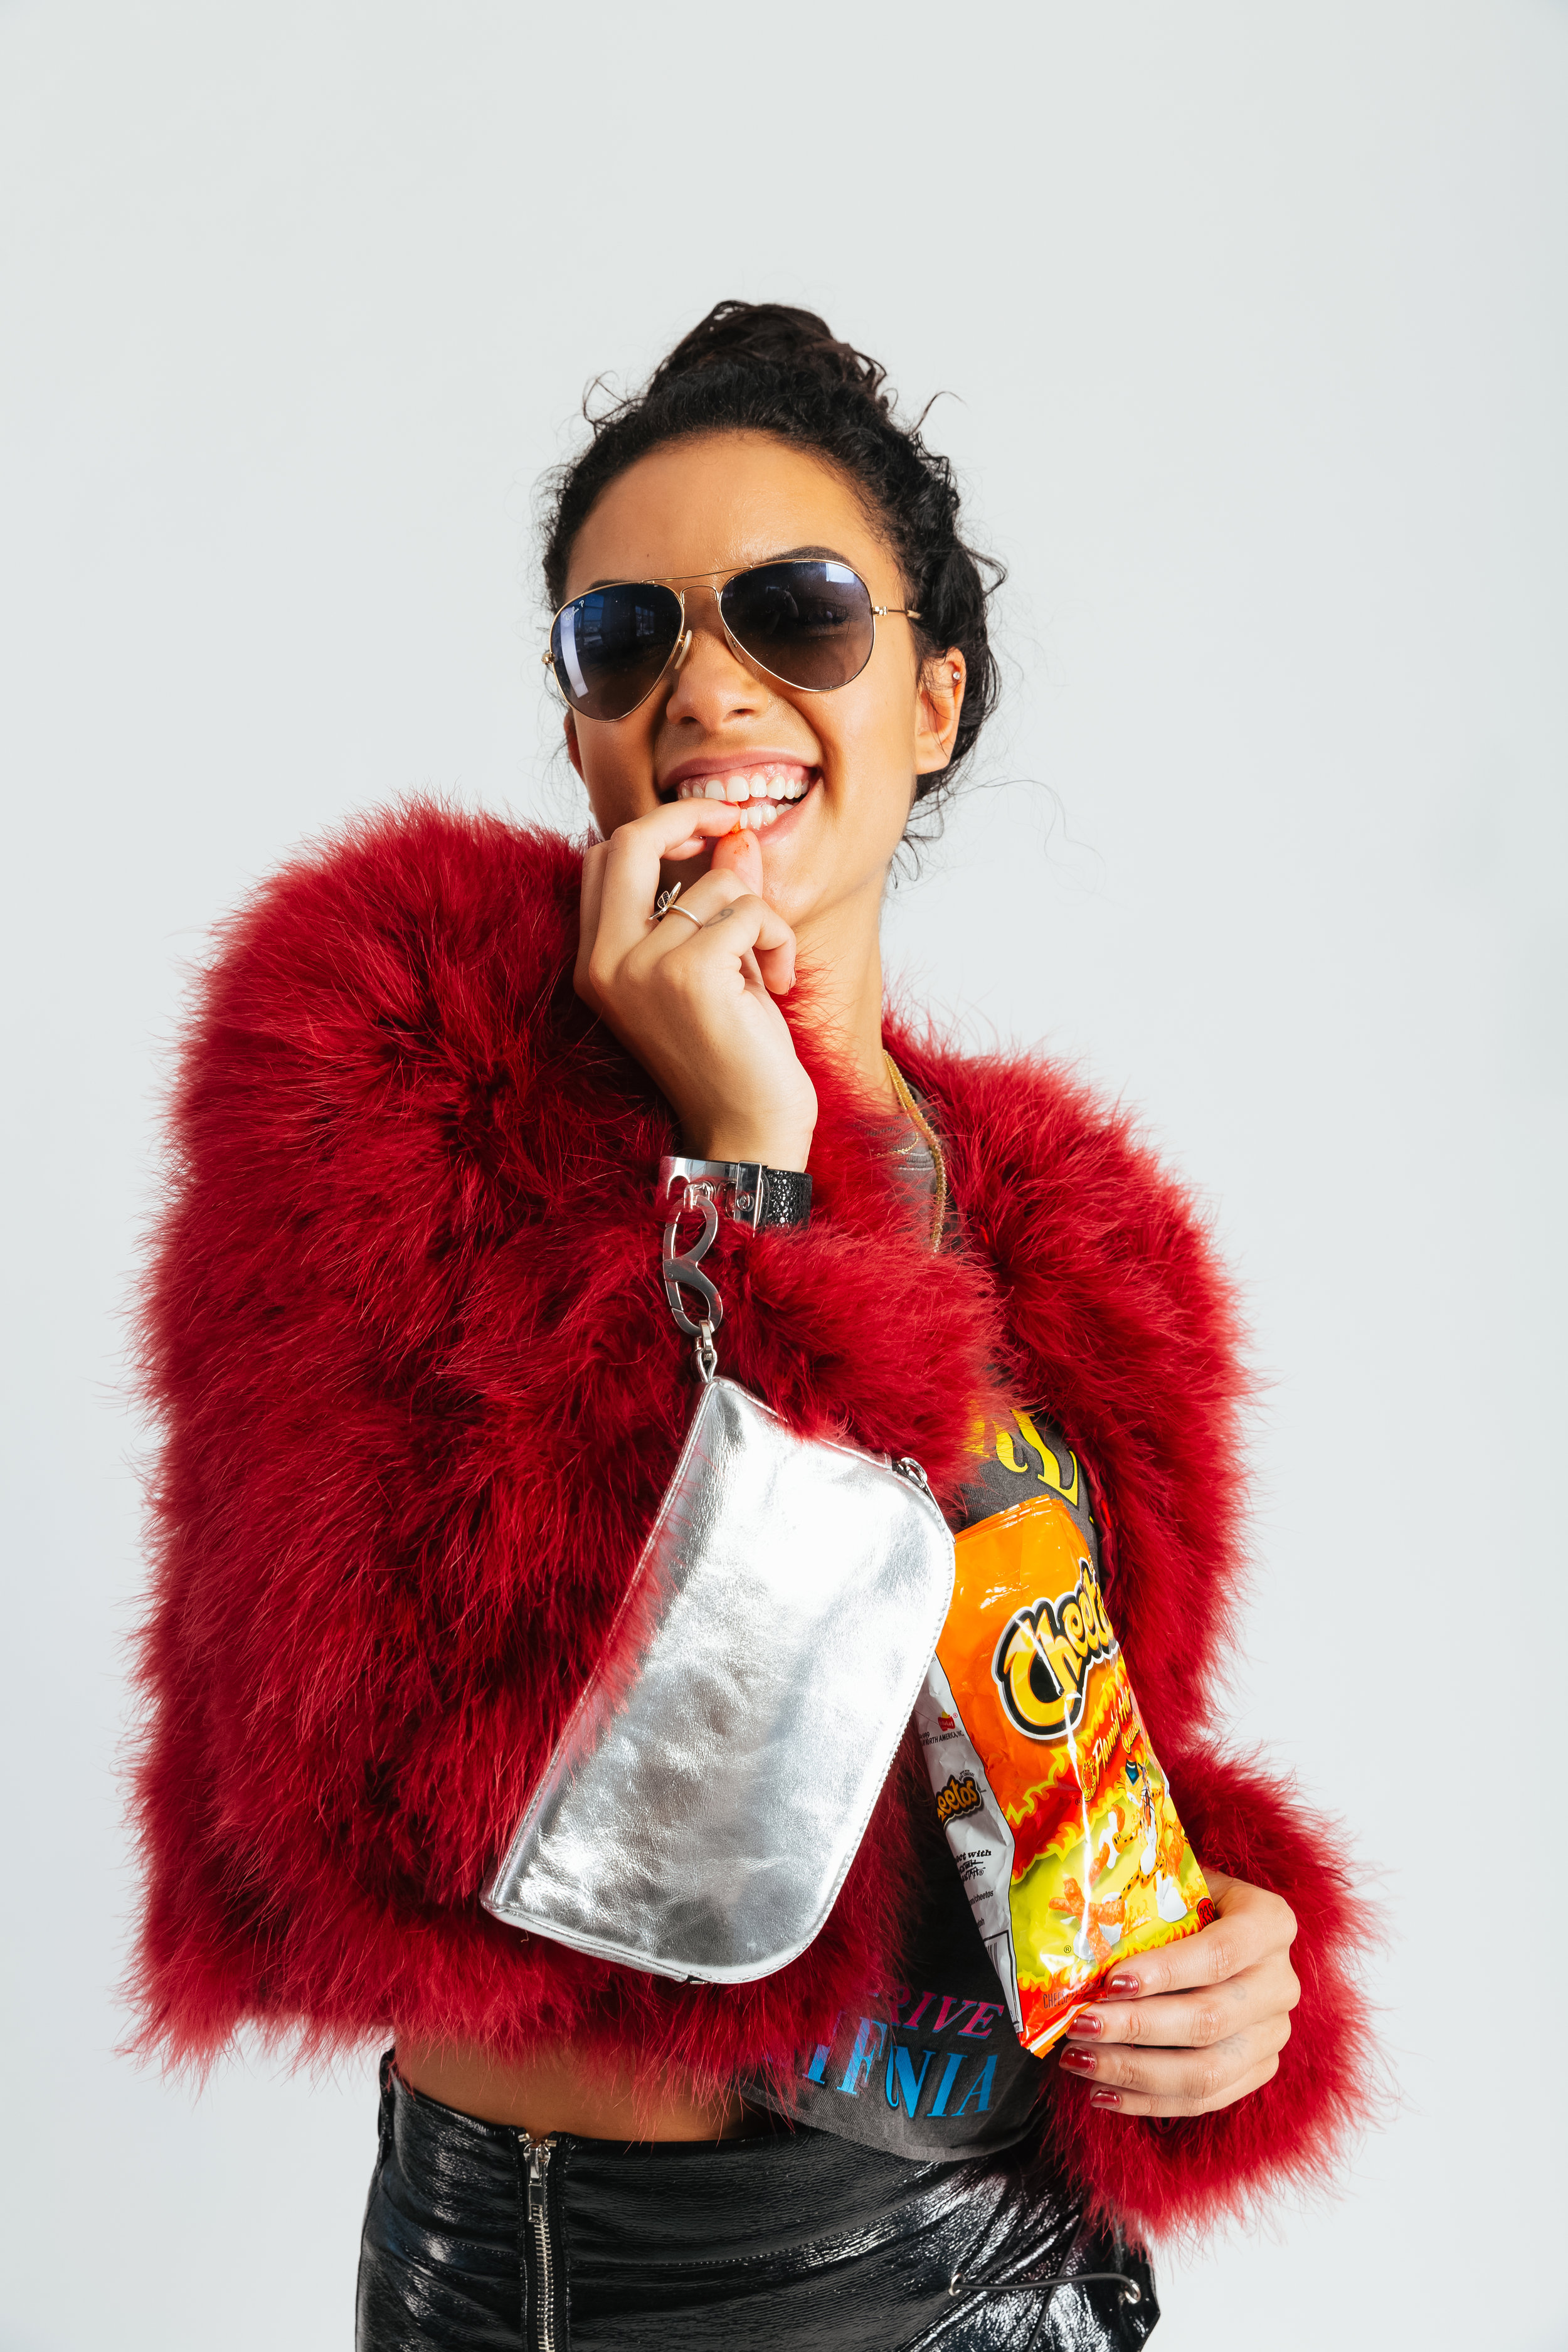 GOT IT in the BAG. - Whitney BrielleThe 'it bags' you need to go from hot girl summer to flamin hot fall.